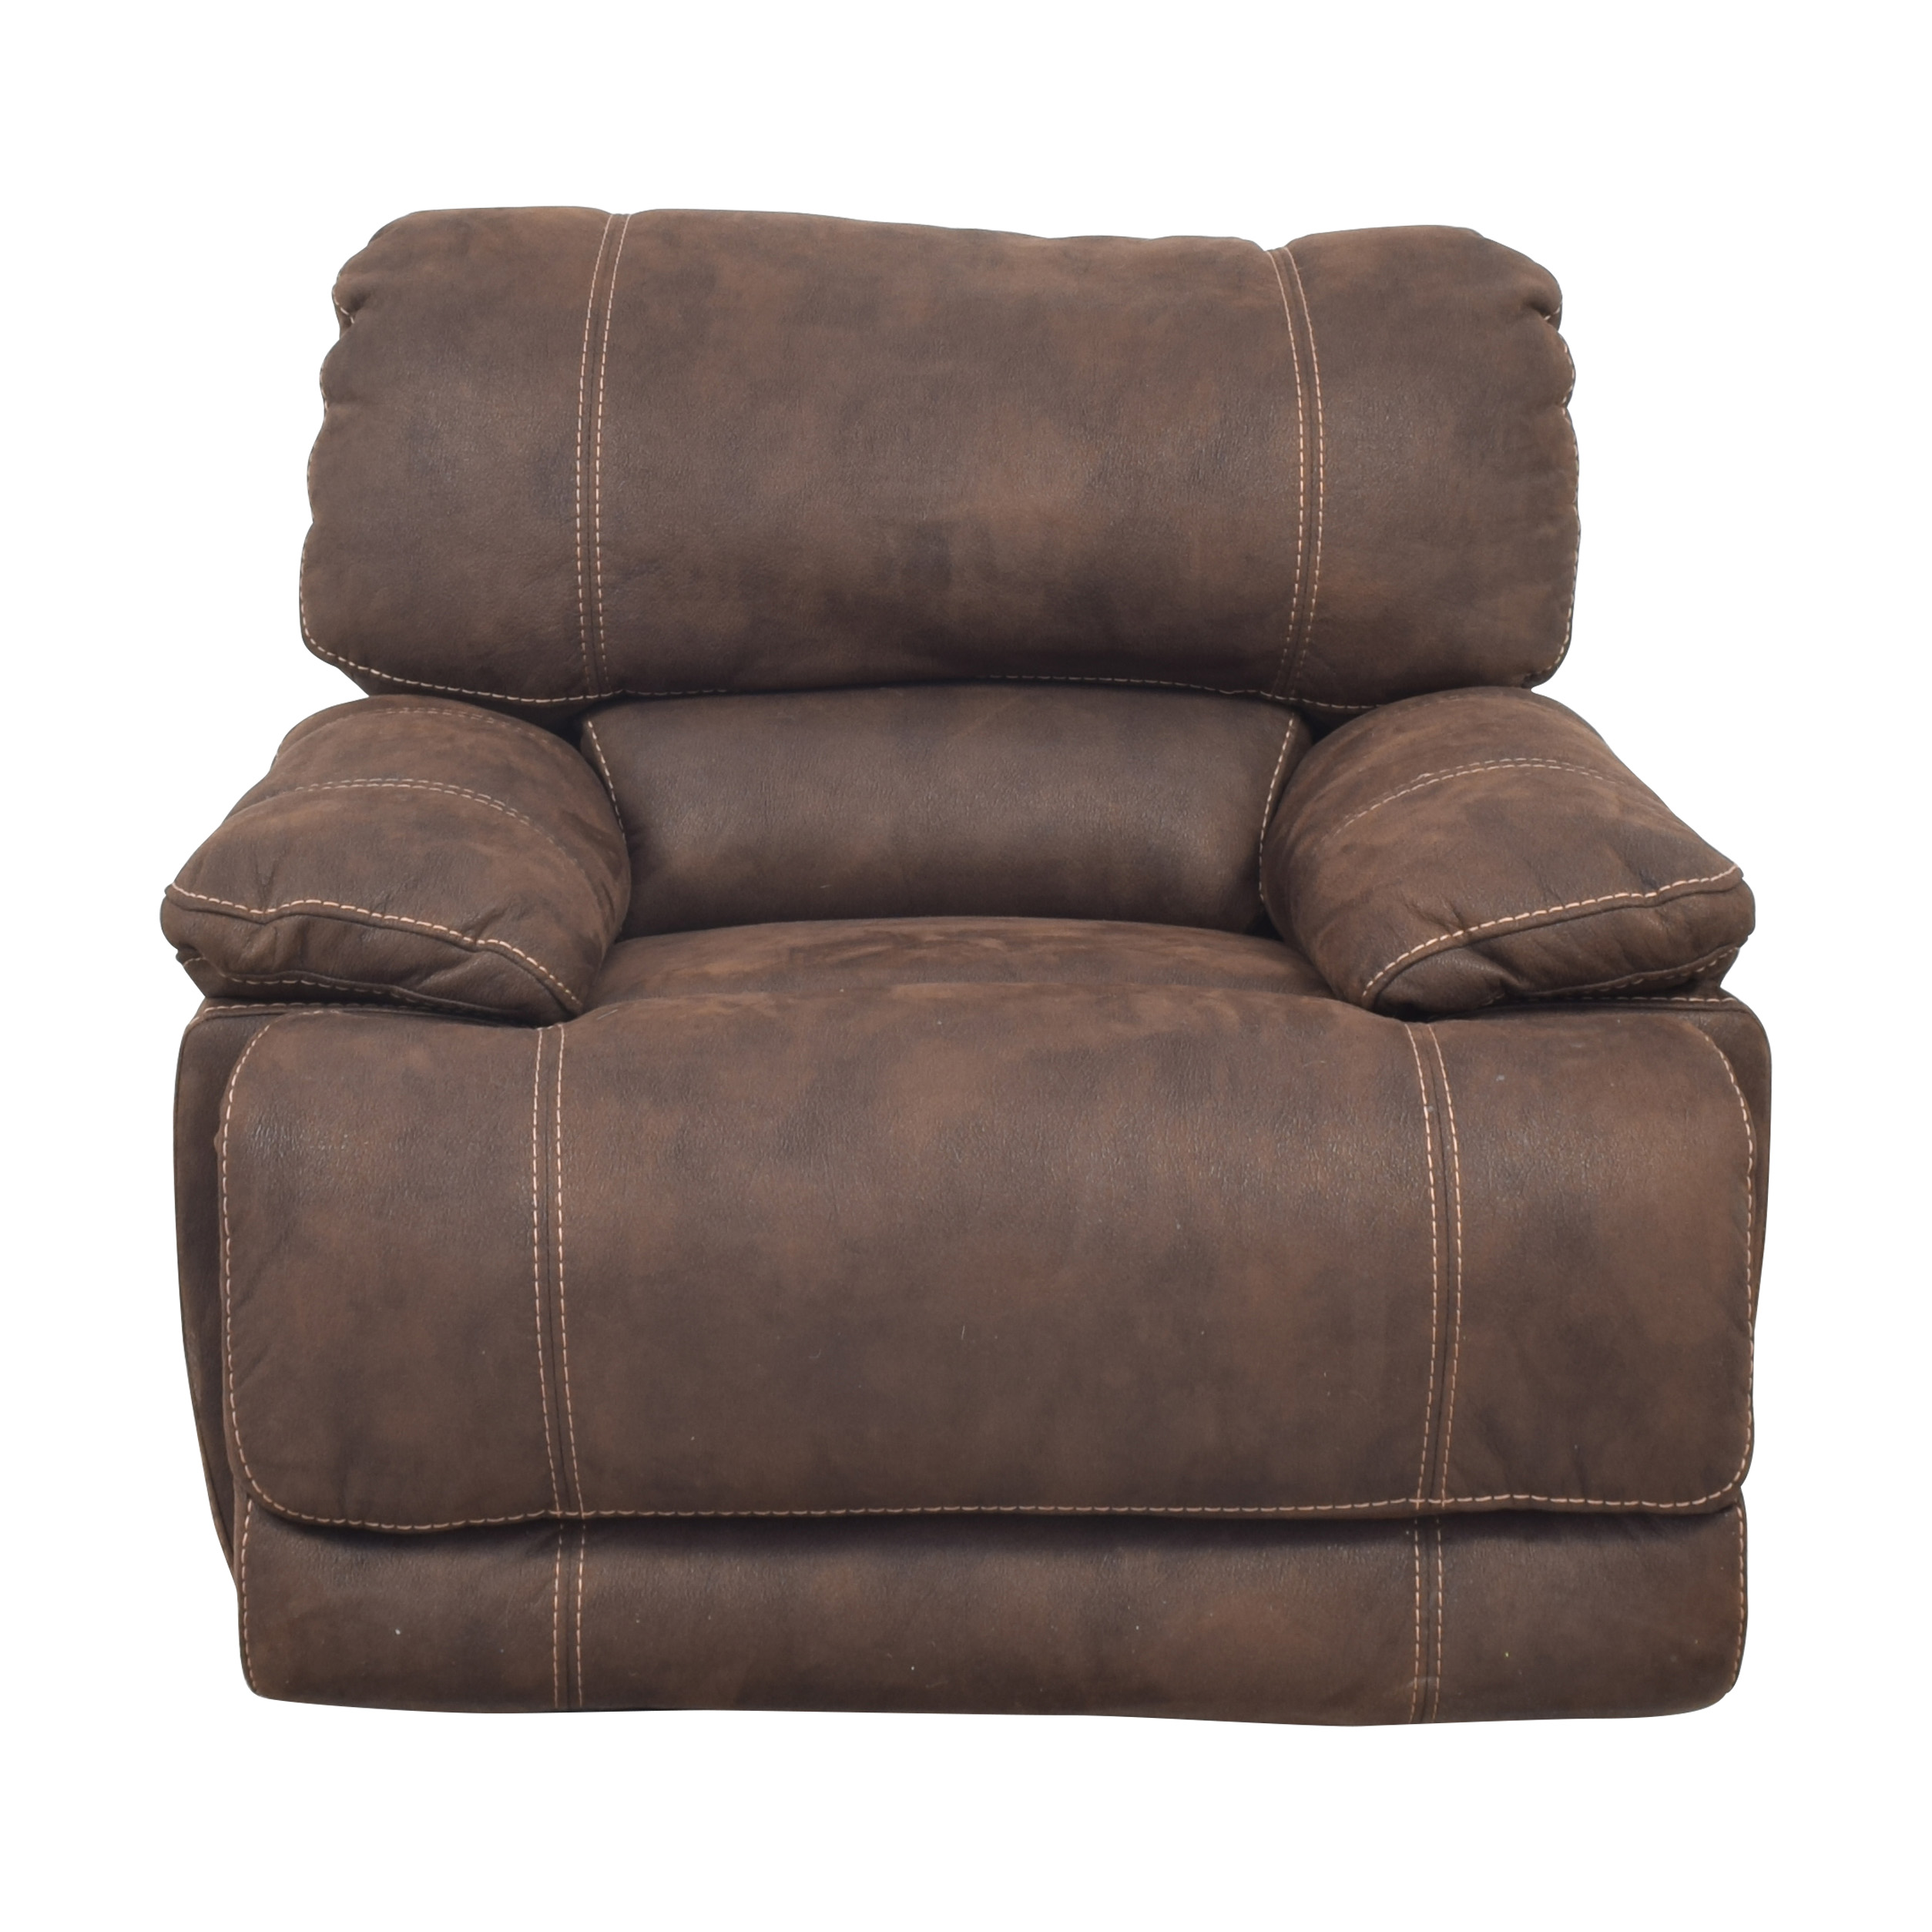 Macy's Macy's Upholstered Recliner discount